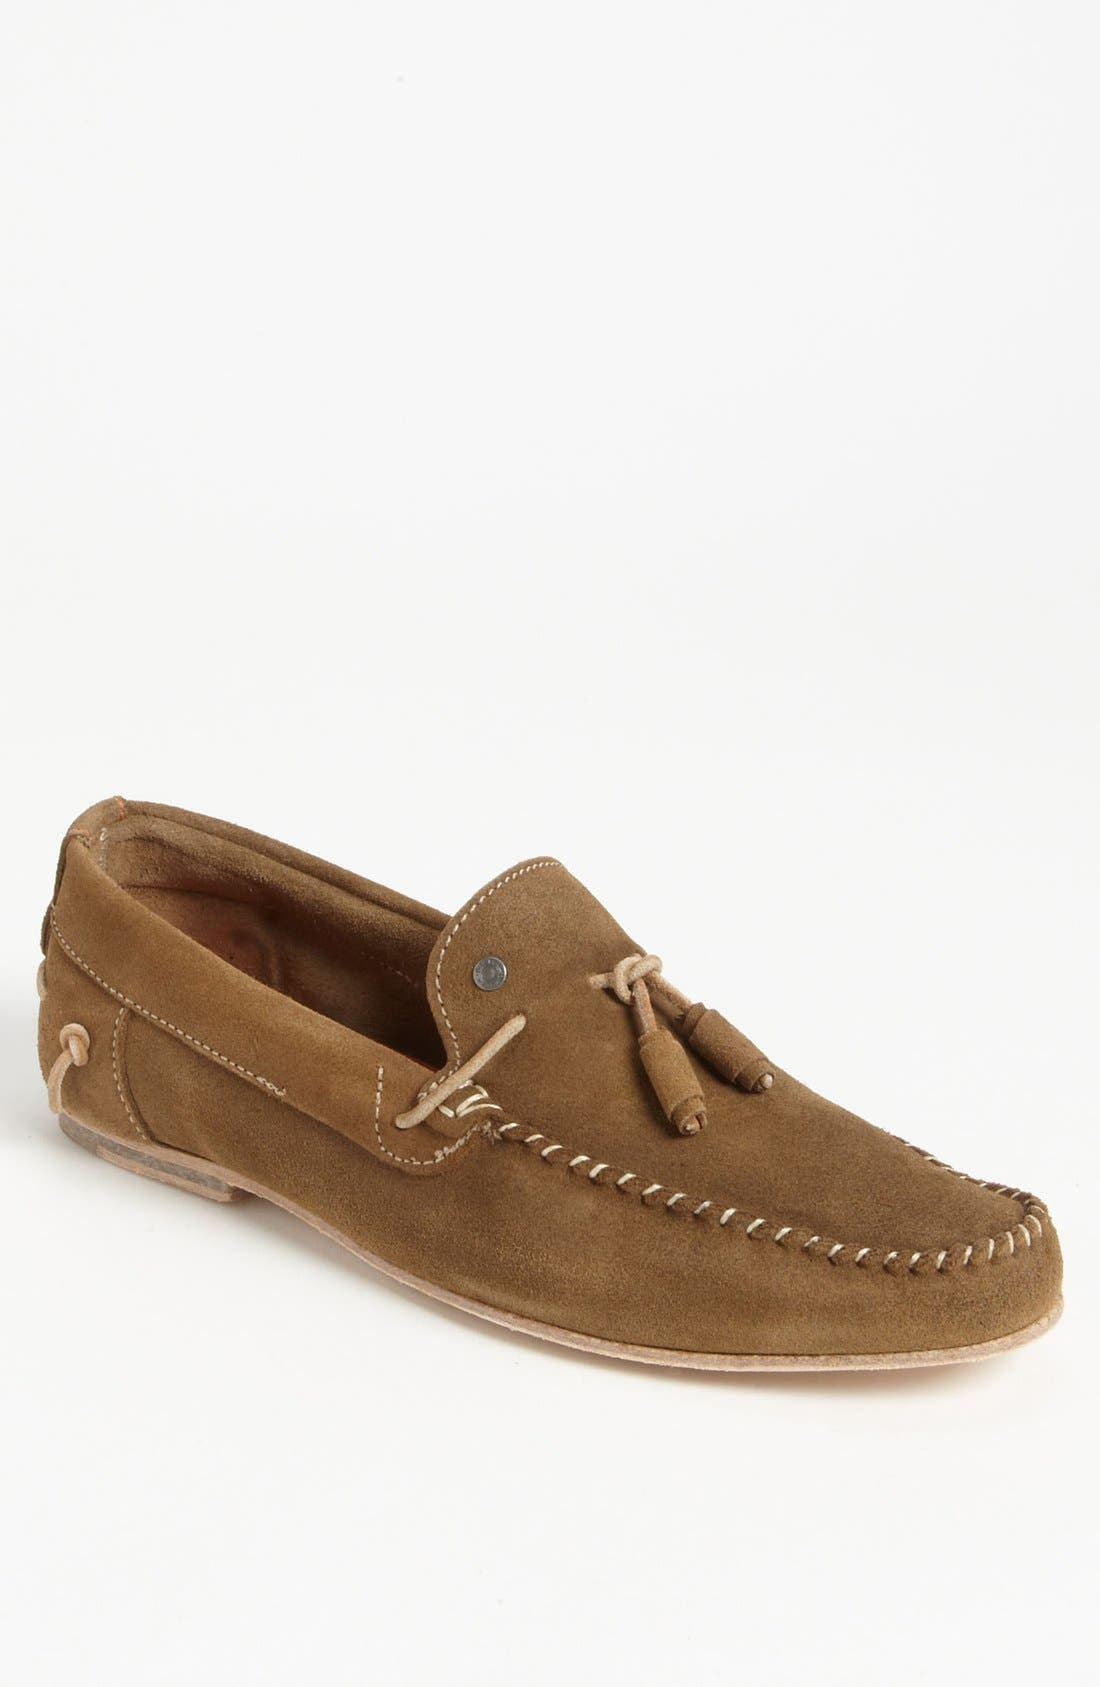 Alternate Image 1 Selected - DIESEL® 'Connect Grahl' Moccasin